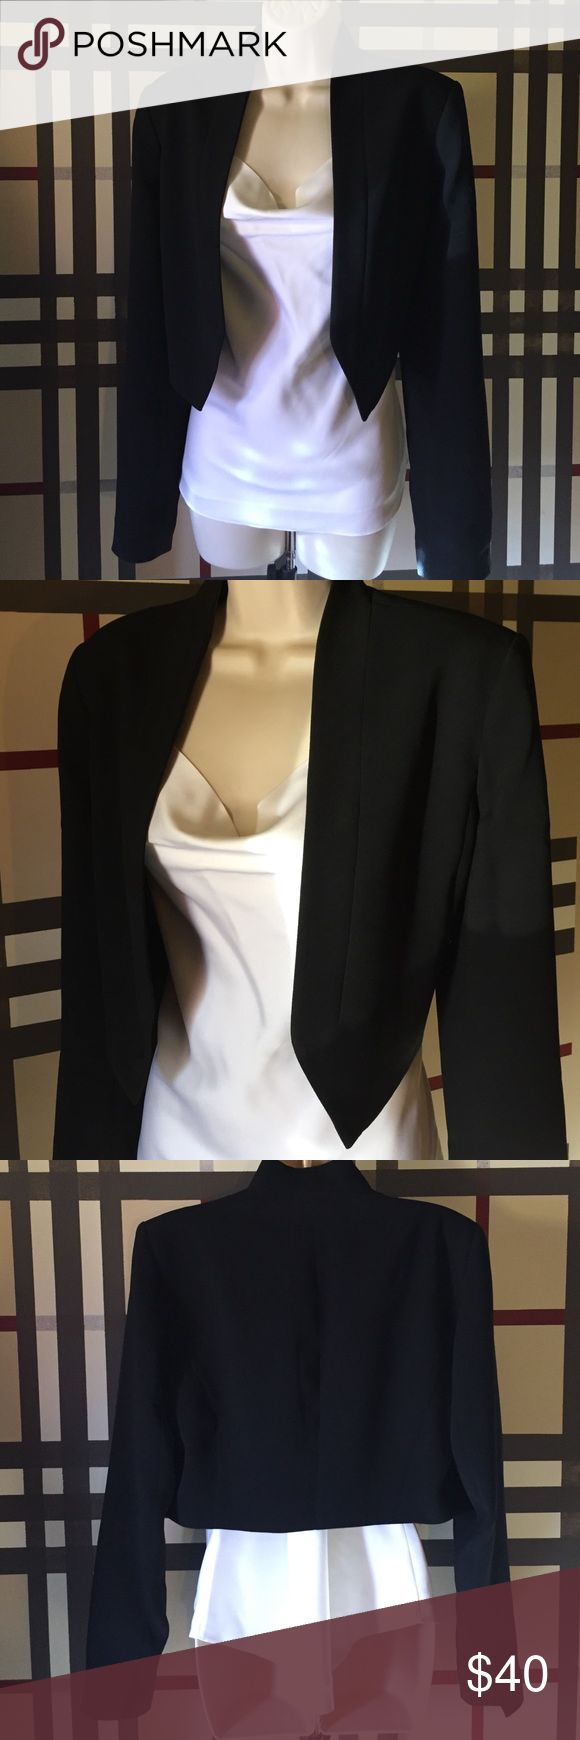 I own several crop blazers from WHBM